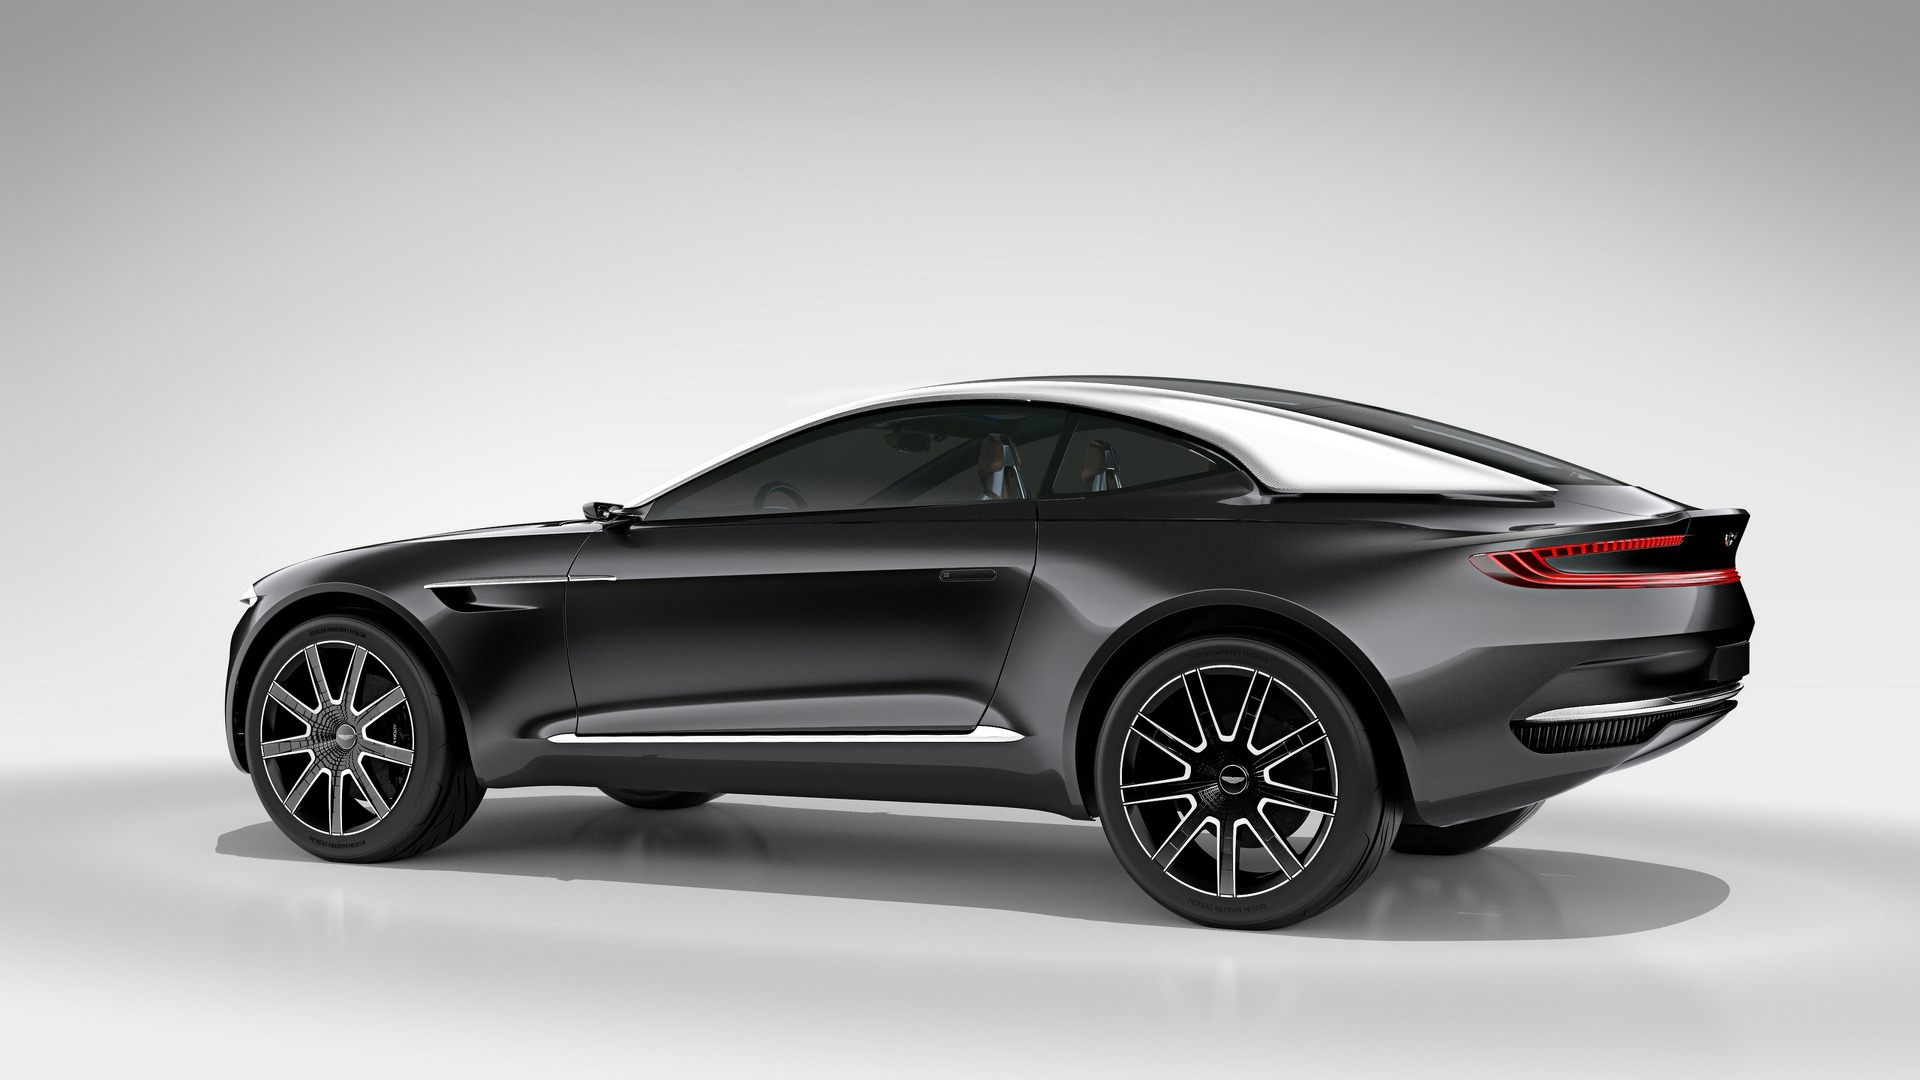 Aston Martin's Upcoming DBX Crossover Could Pack A Potent V12